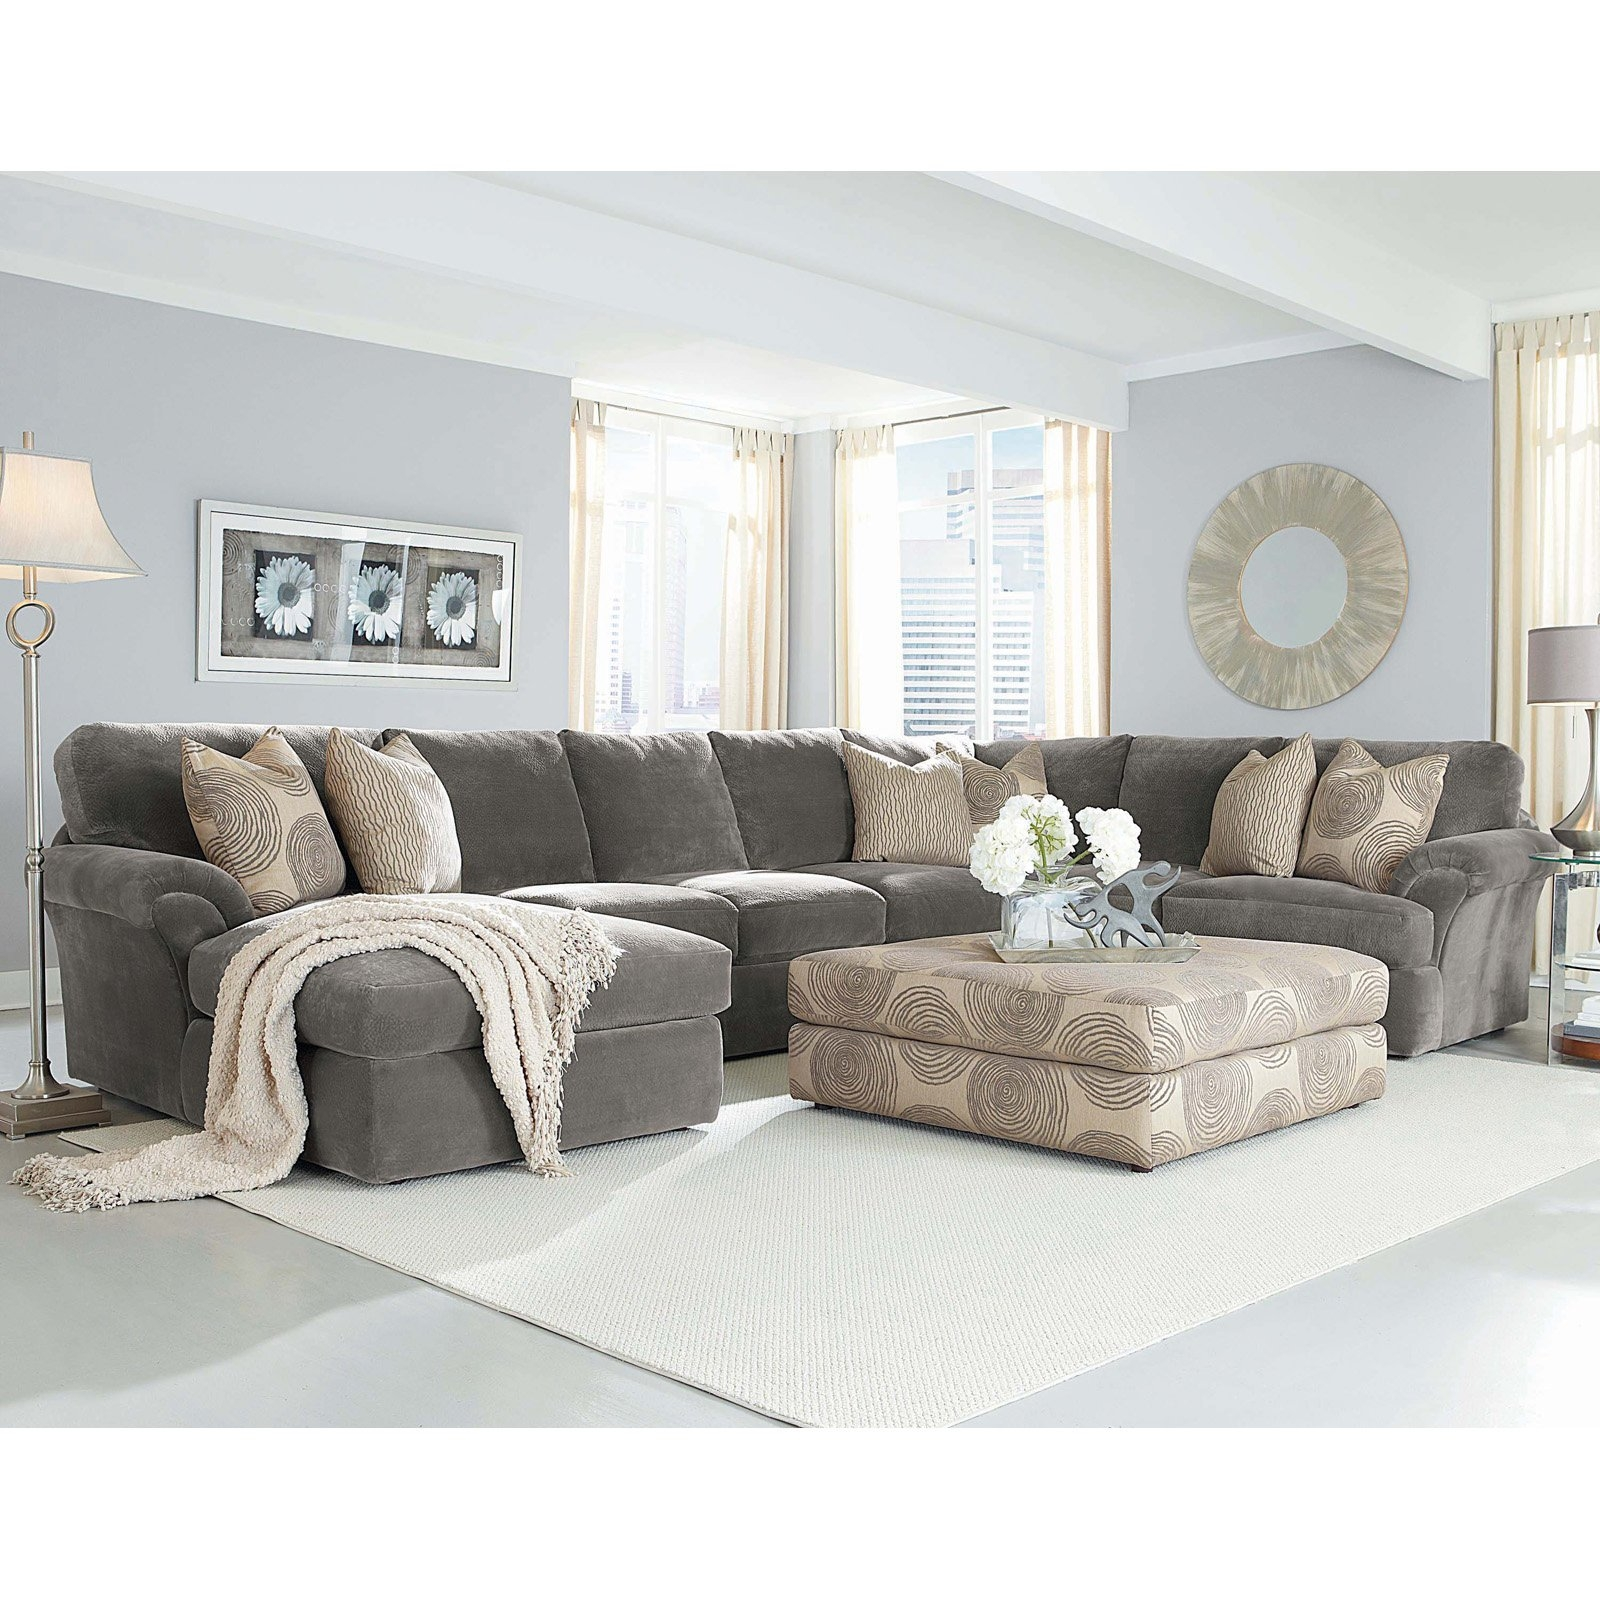 Unique Bradley Sectional Sofa 57 With Additional Top Rated Throughout Champion Sectional Sofa (Image 15 of 15)